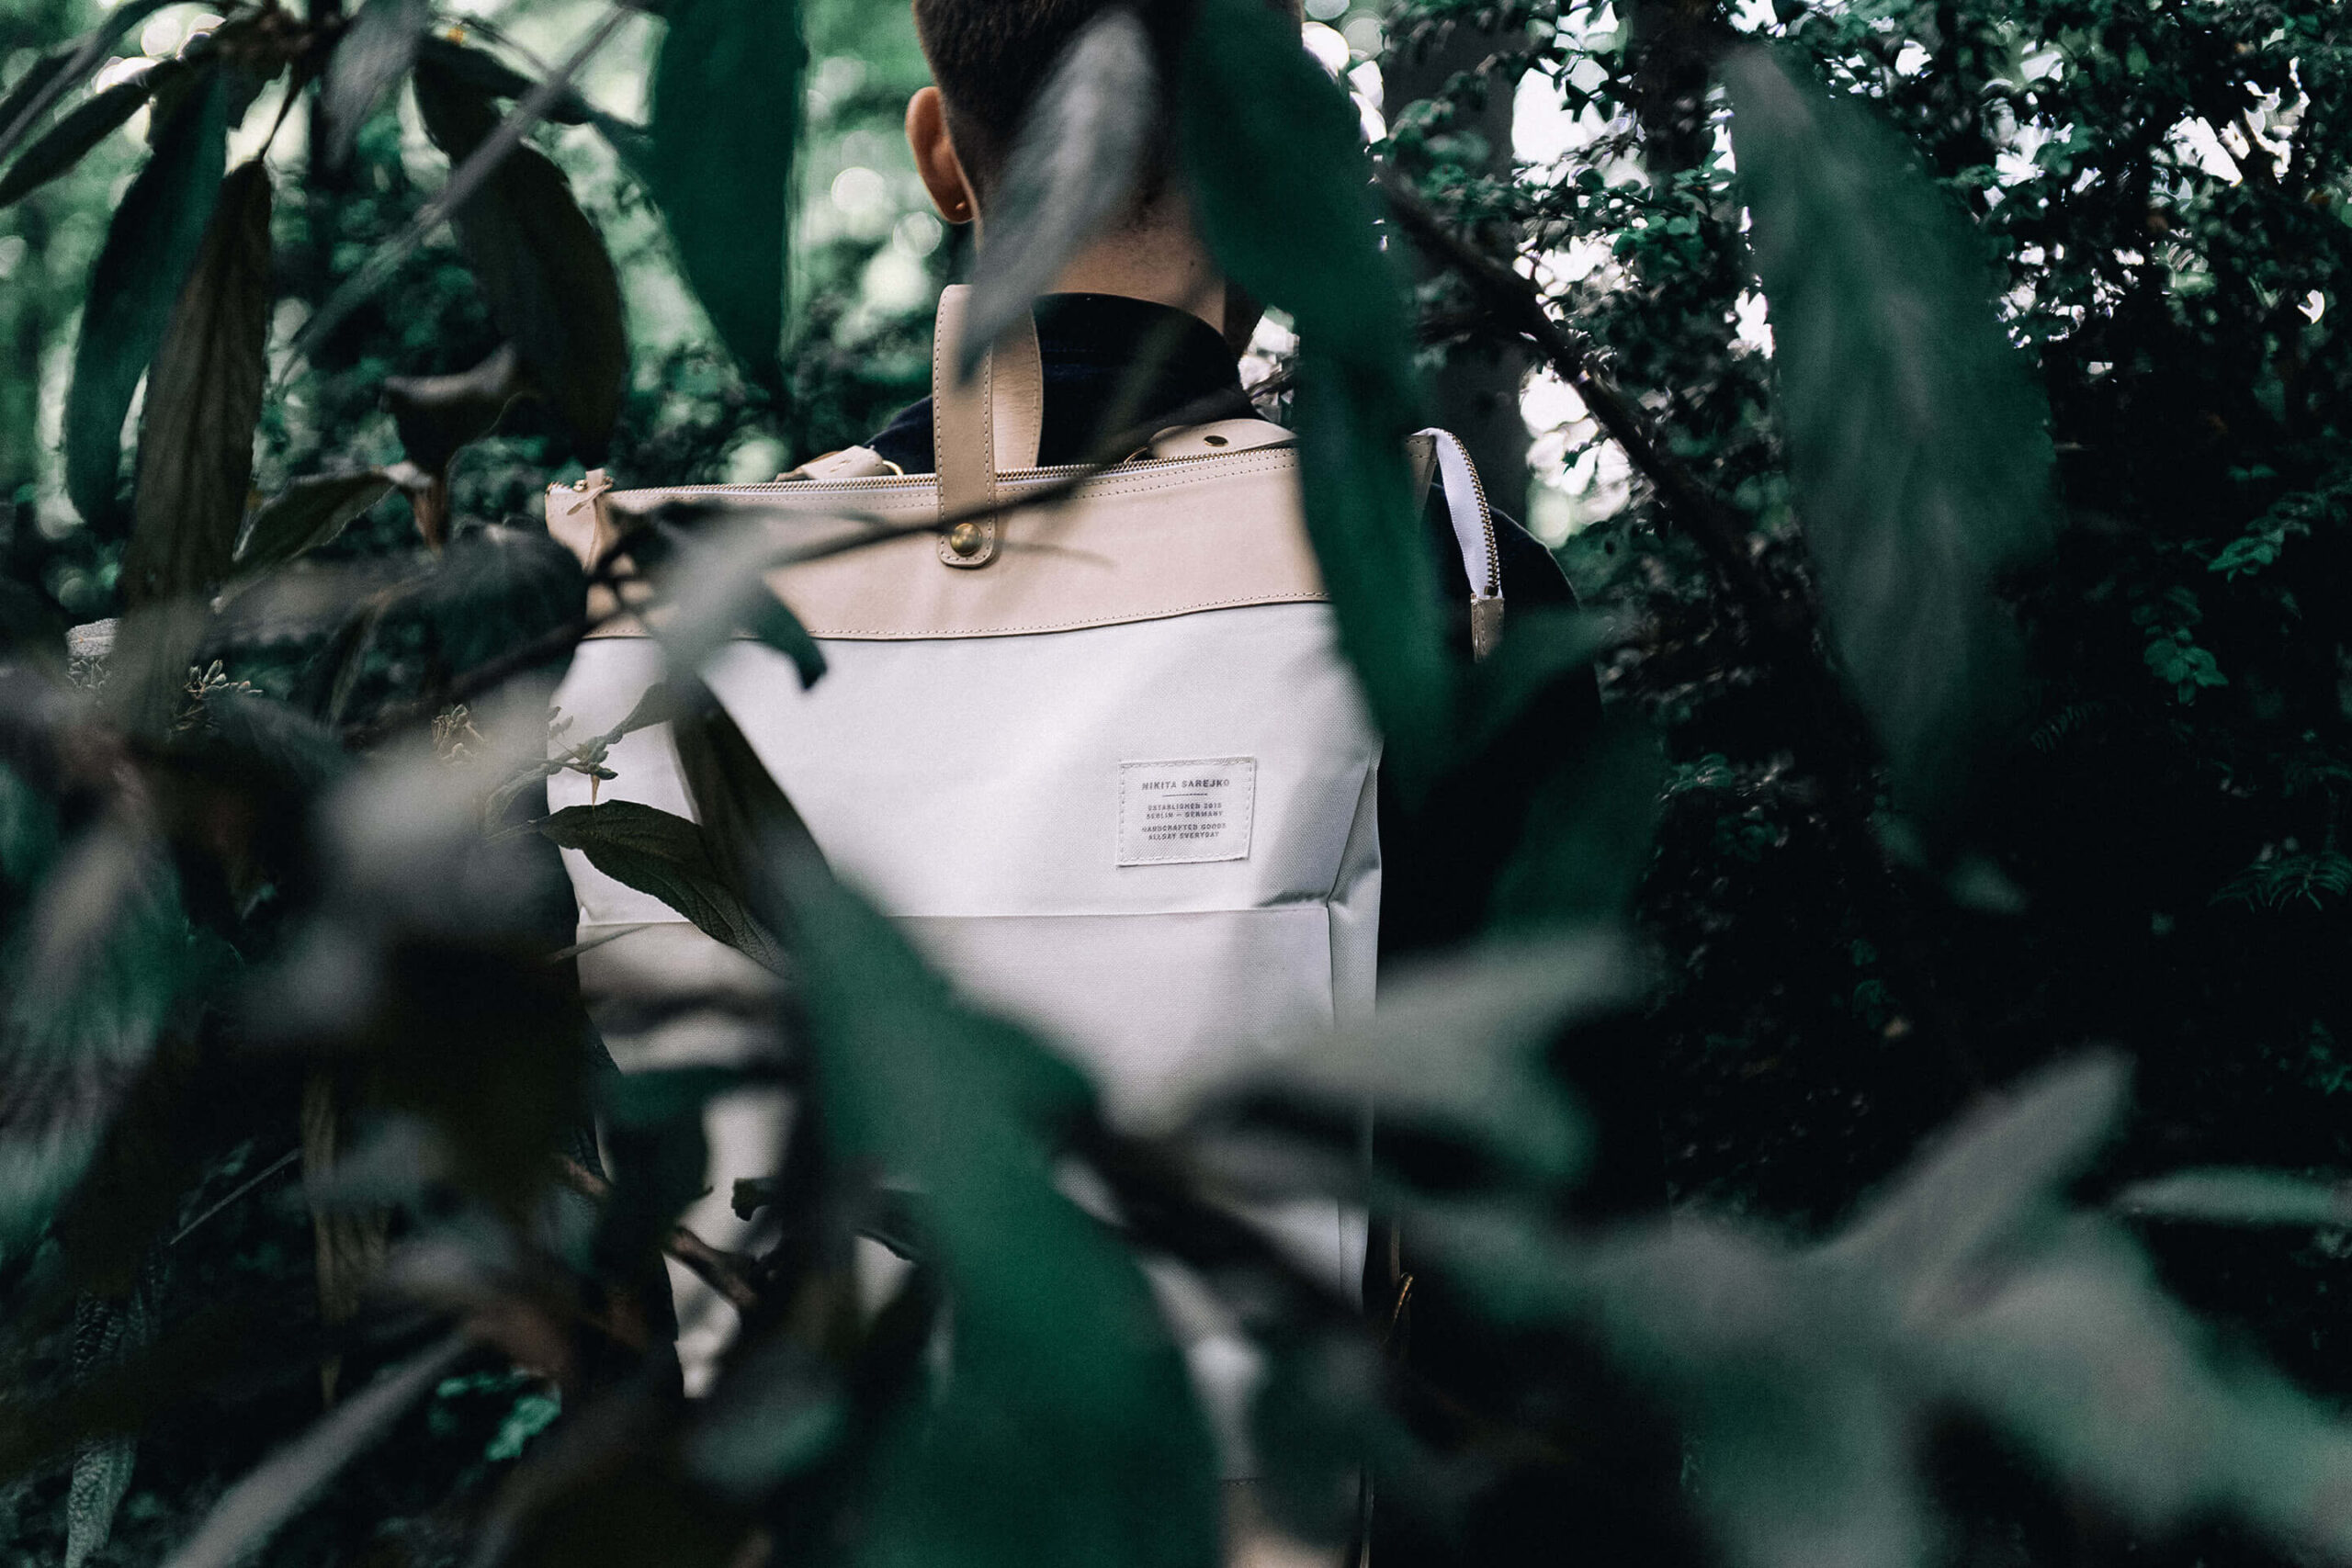 Demian backpack editorial image